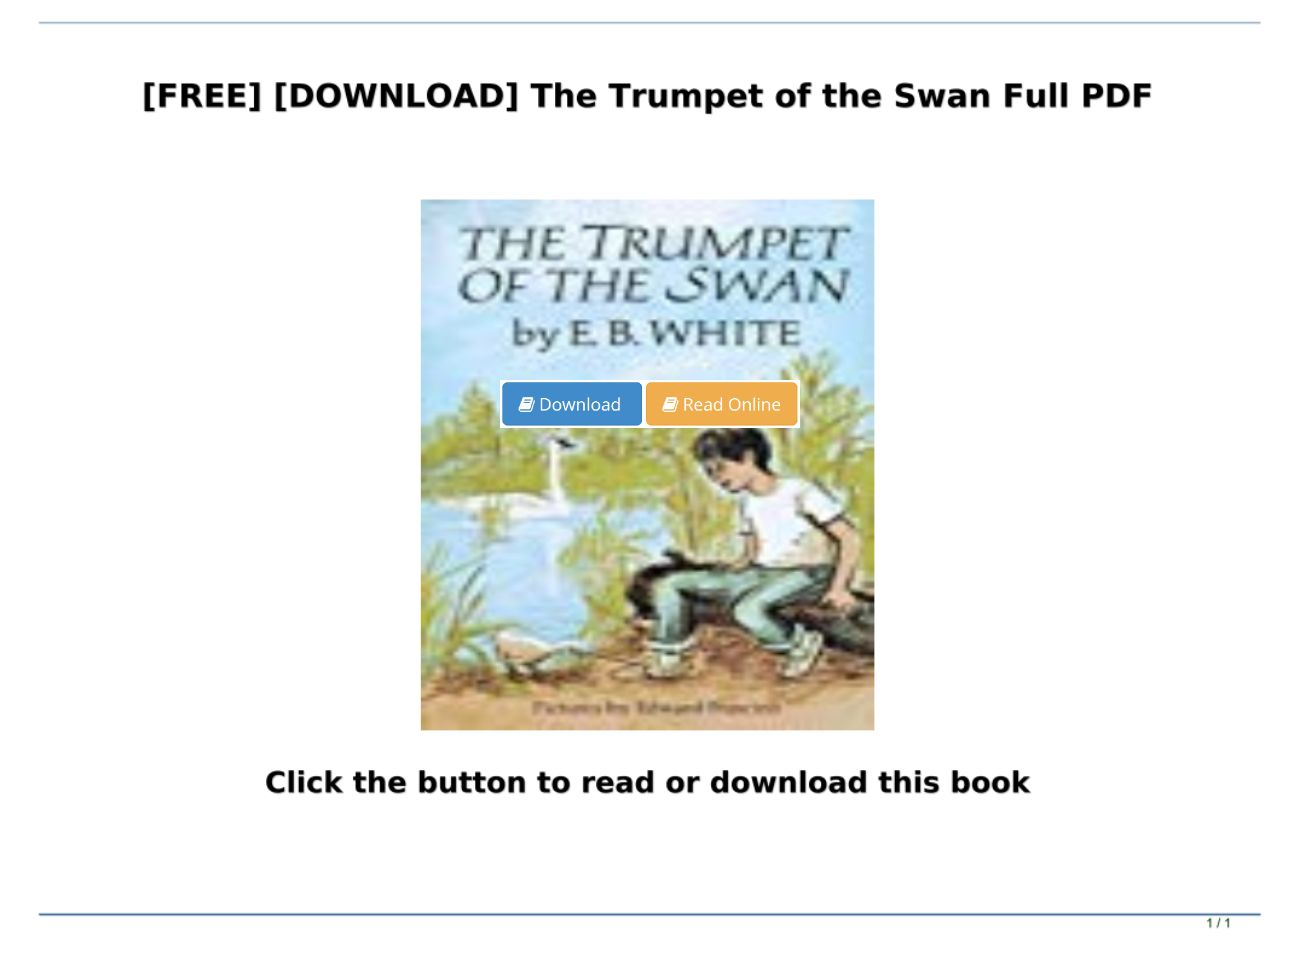 the trumpet of the swan free download